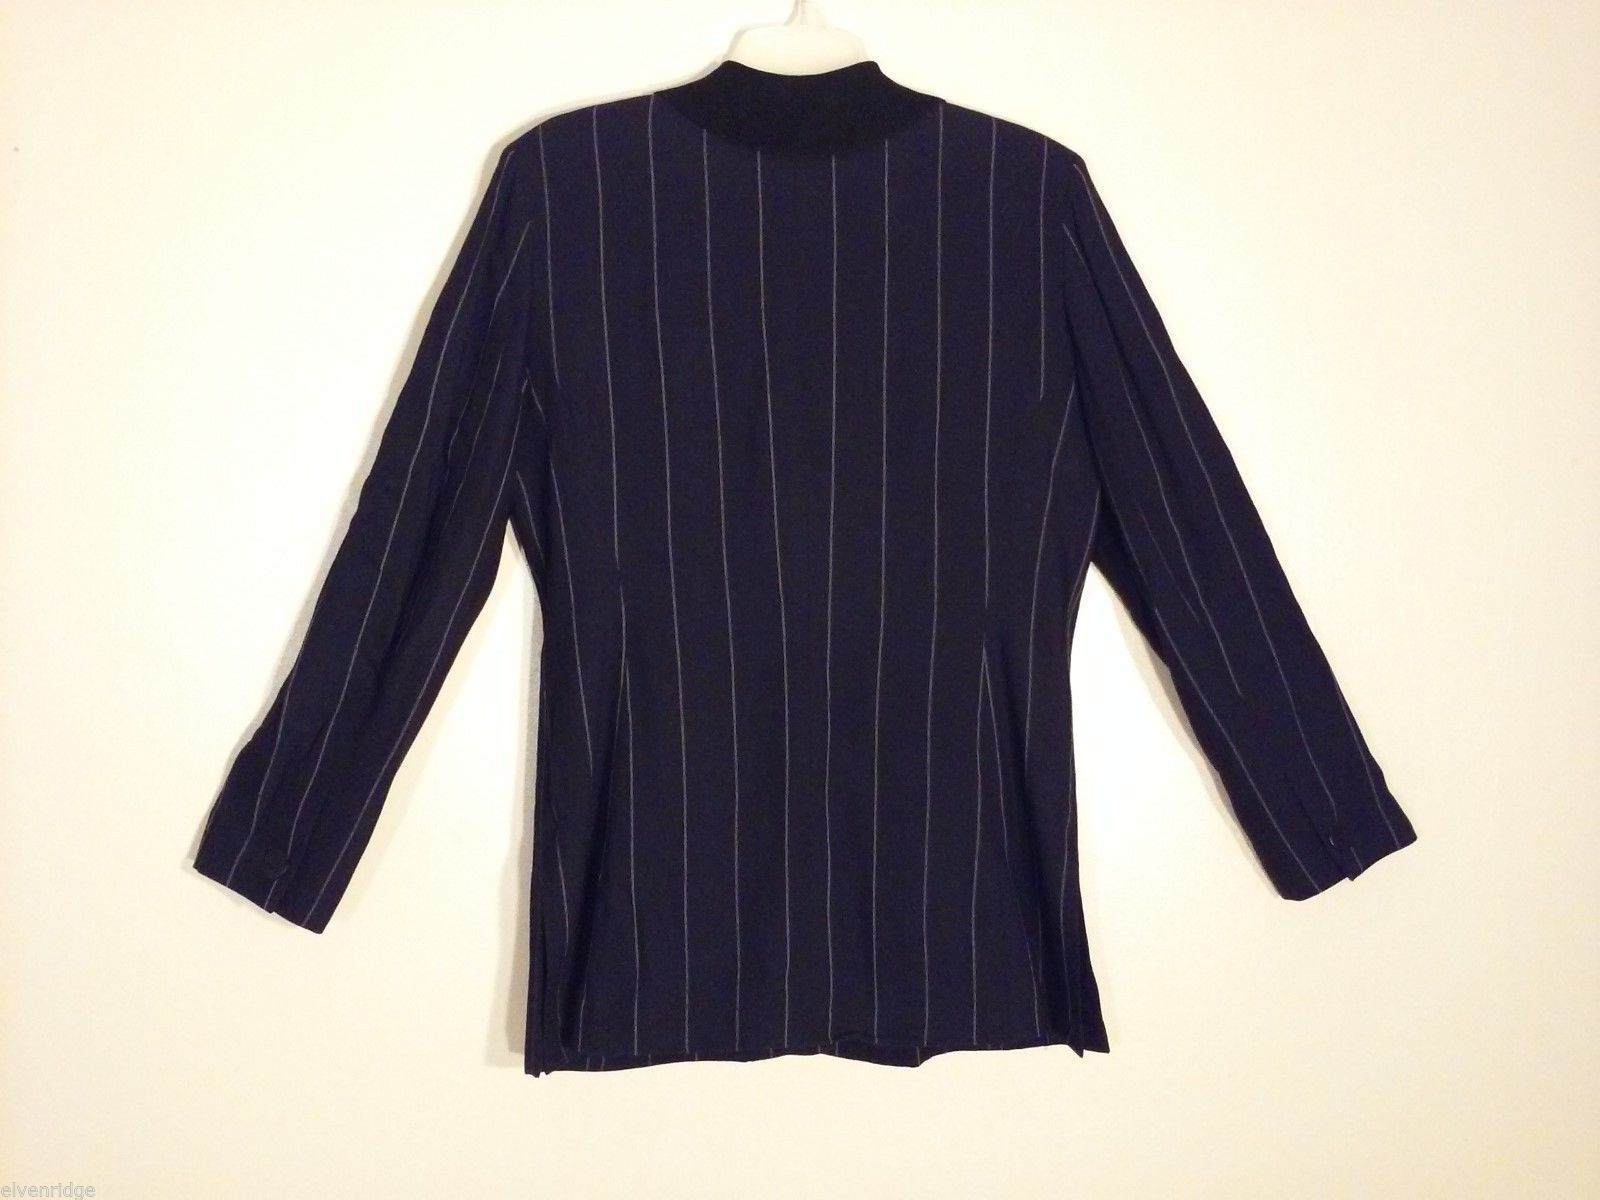 Womens Ann Taylor Black Pinstriped Blazer, Size 10